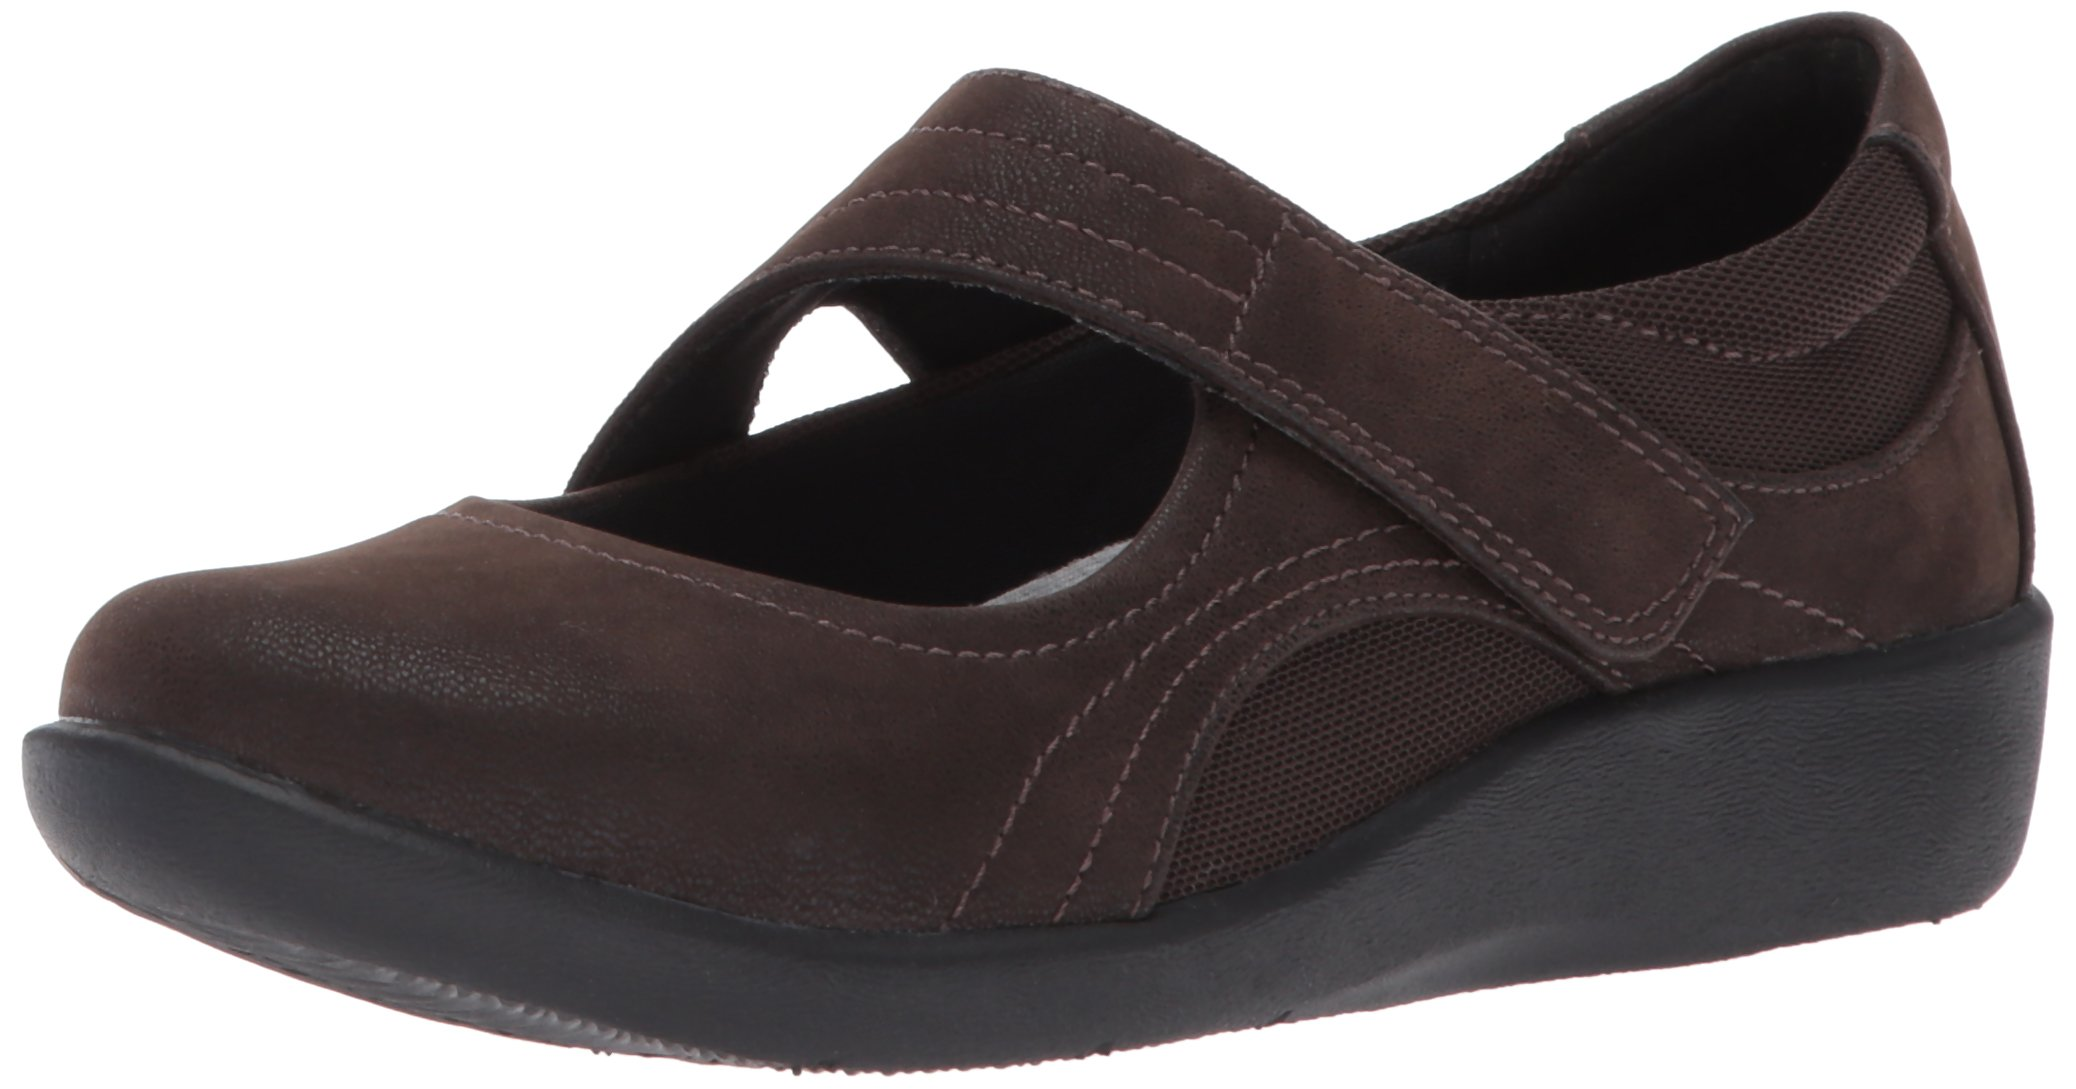 CLARKS Women's Sillian Bella Mary Jane Flat, Dark Brown Synthetic Nubuck, 8 W US